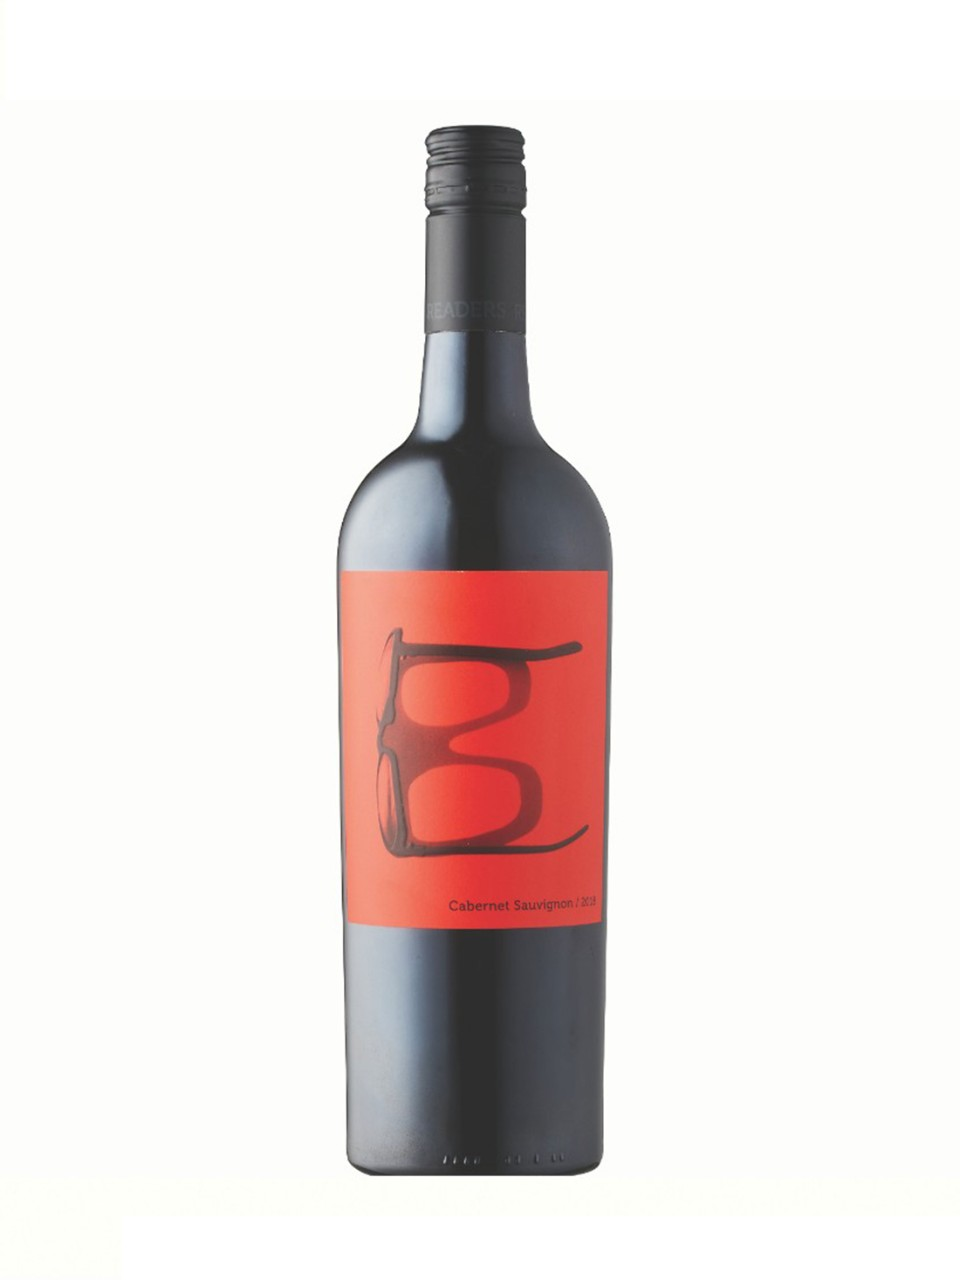 Bookwalter Readers Cabernet Sauvignon 2016 from LCBO